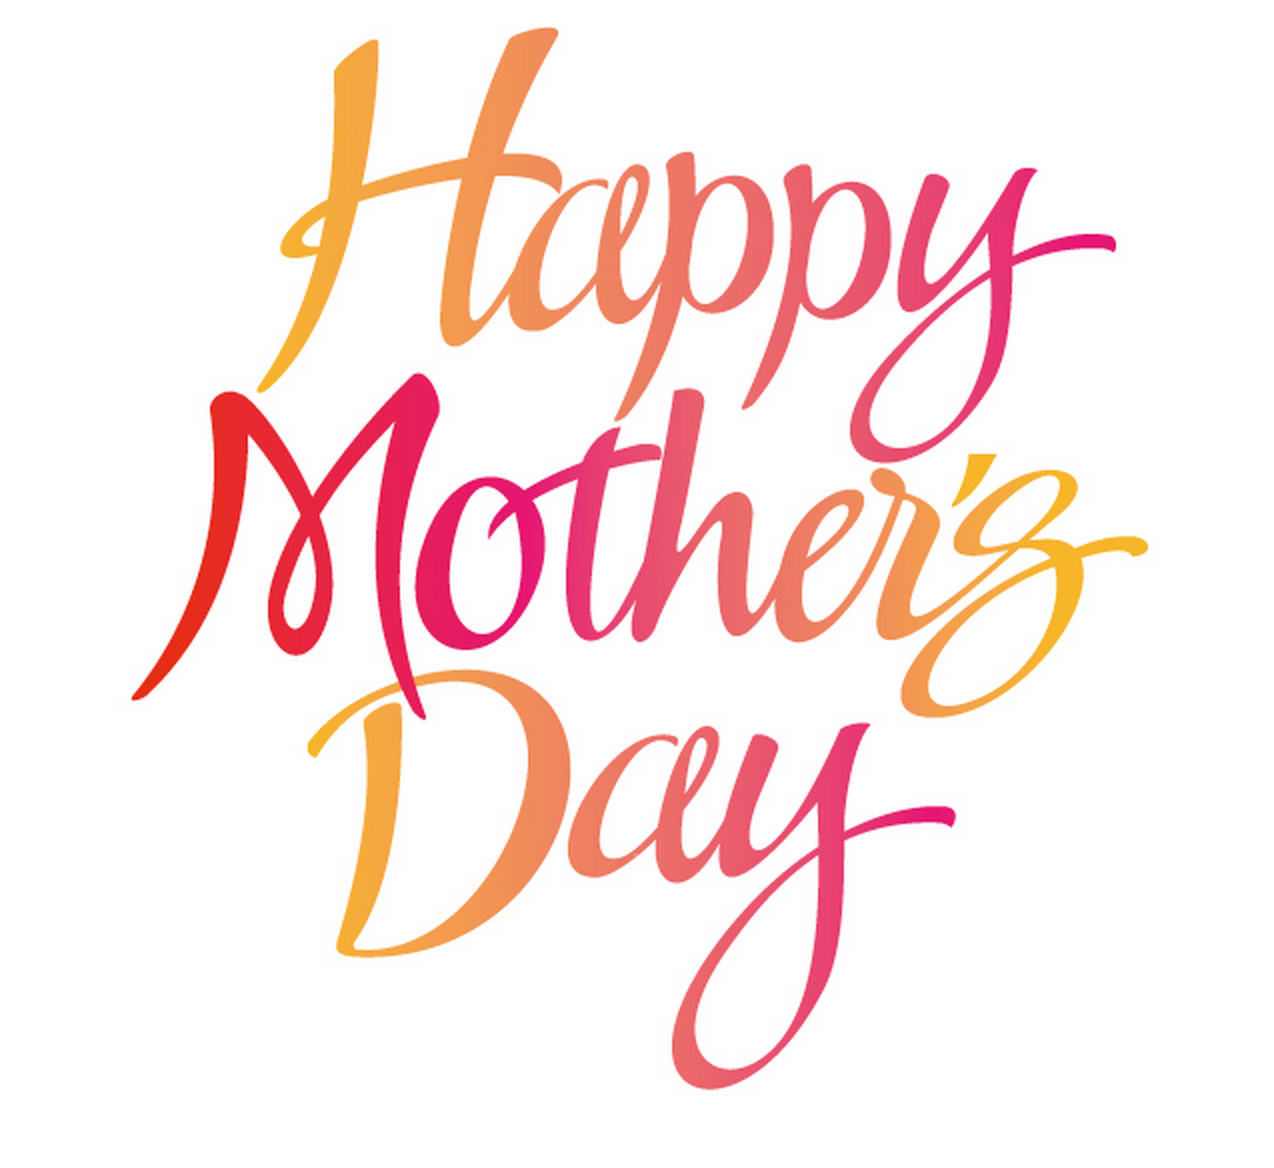 happy mothers day quotes from daughter daughter in law 2017 the day has come which is fully dedicated to all the mothers around the world - Mother039s Day Greeting Card Messages